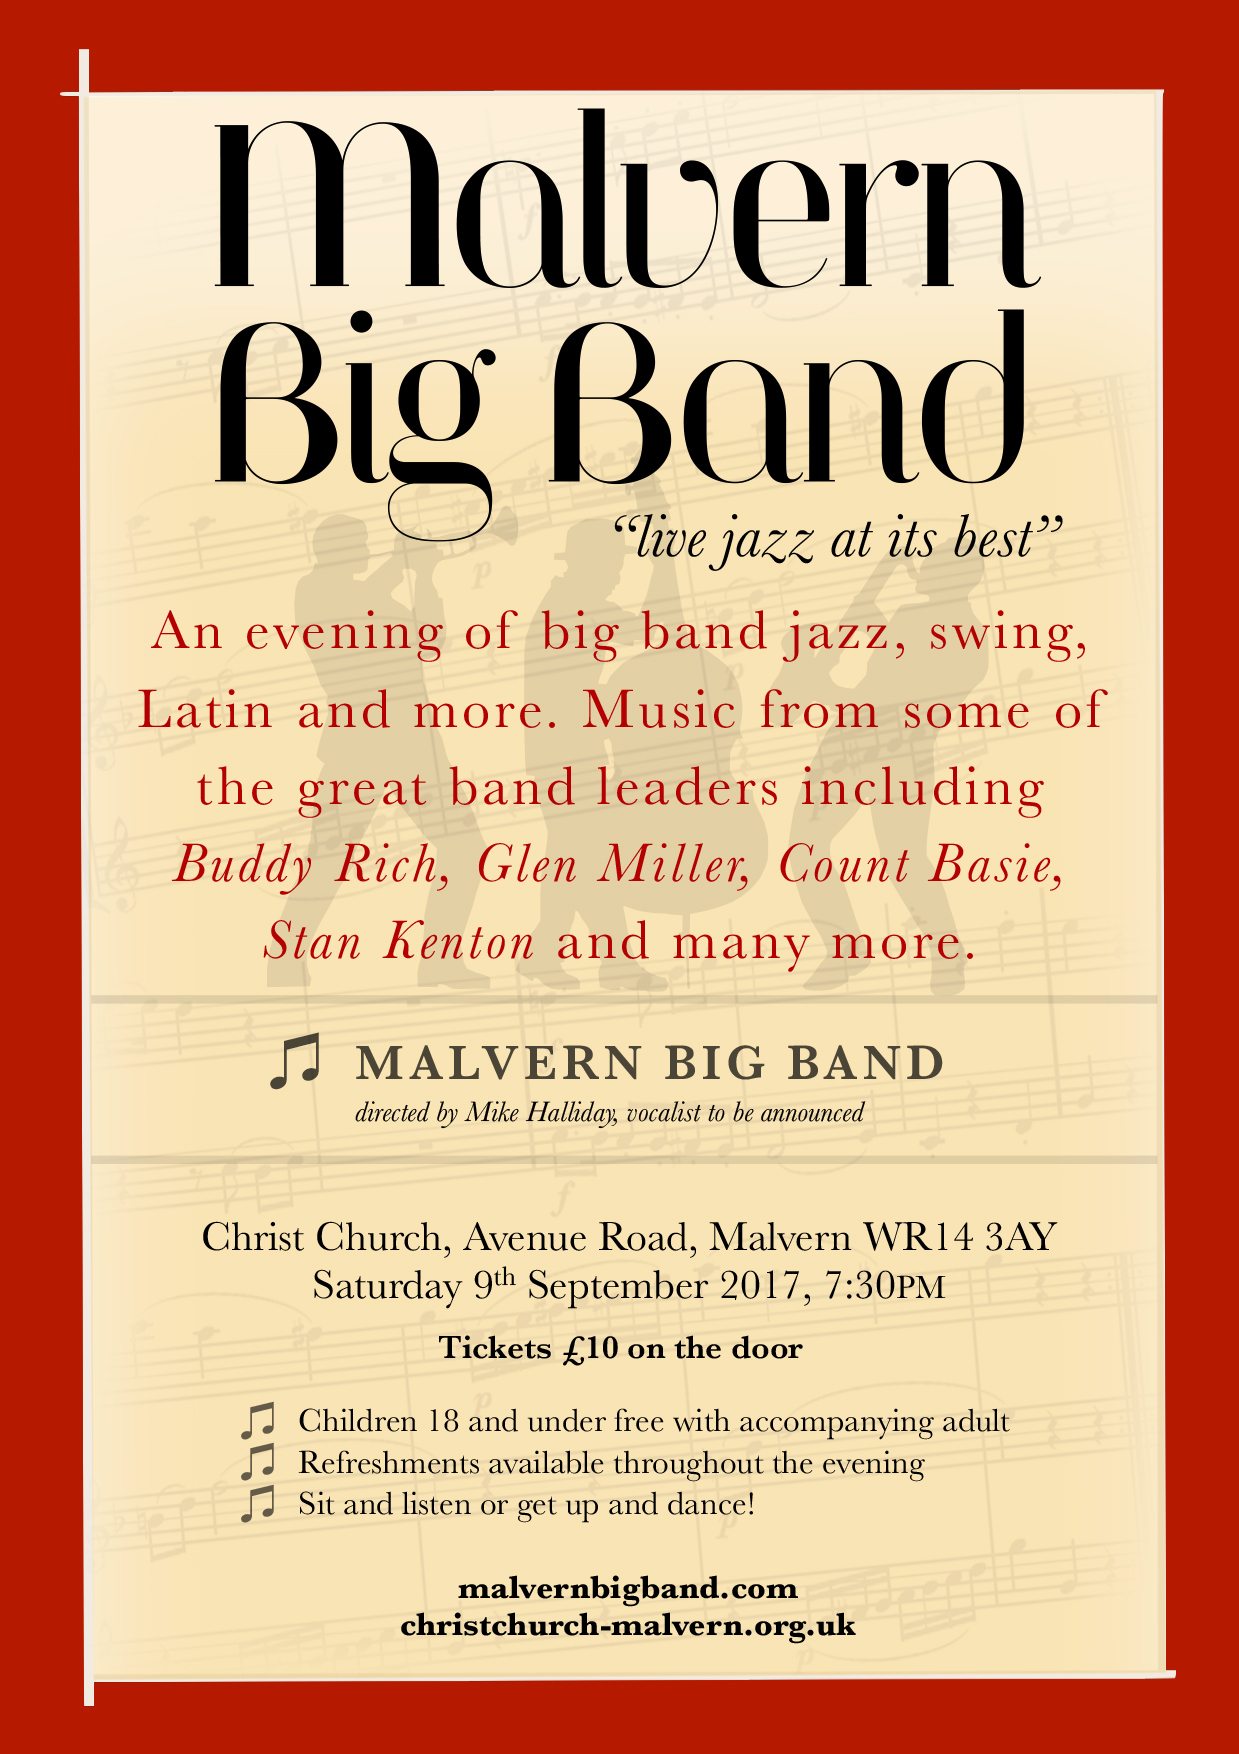 Malvern Big Band